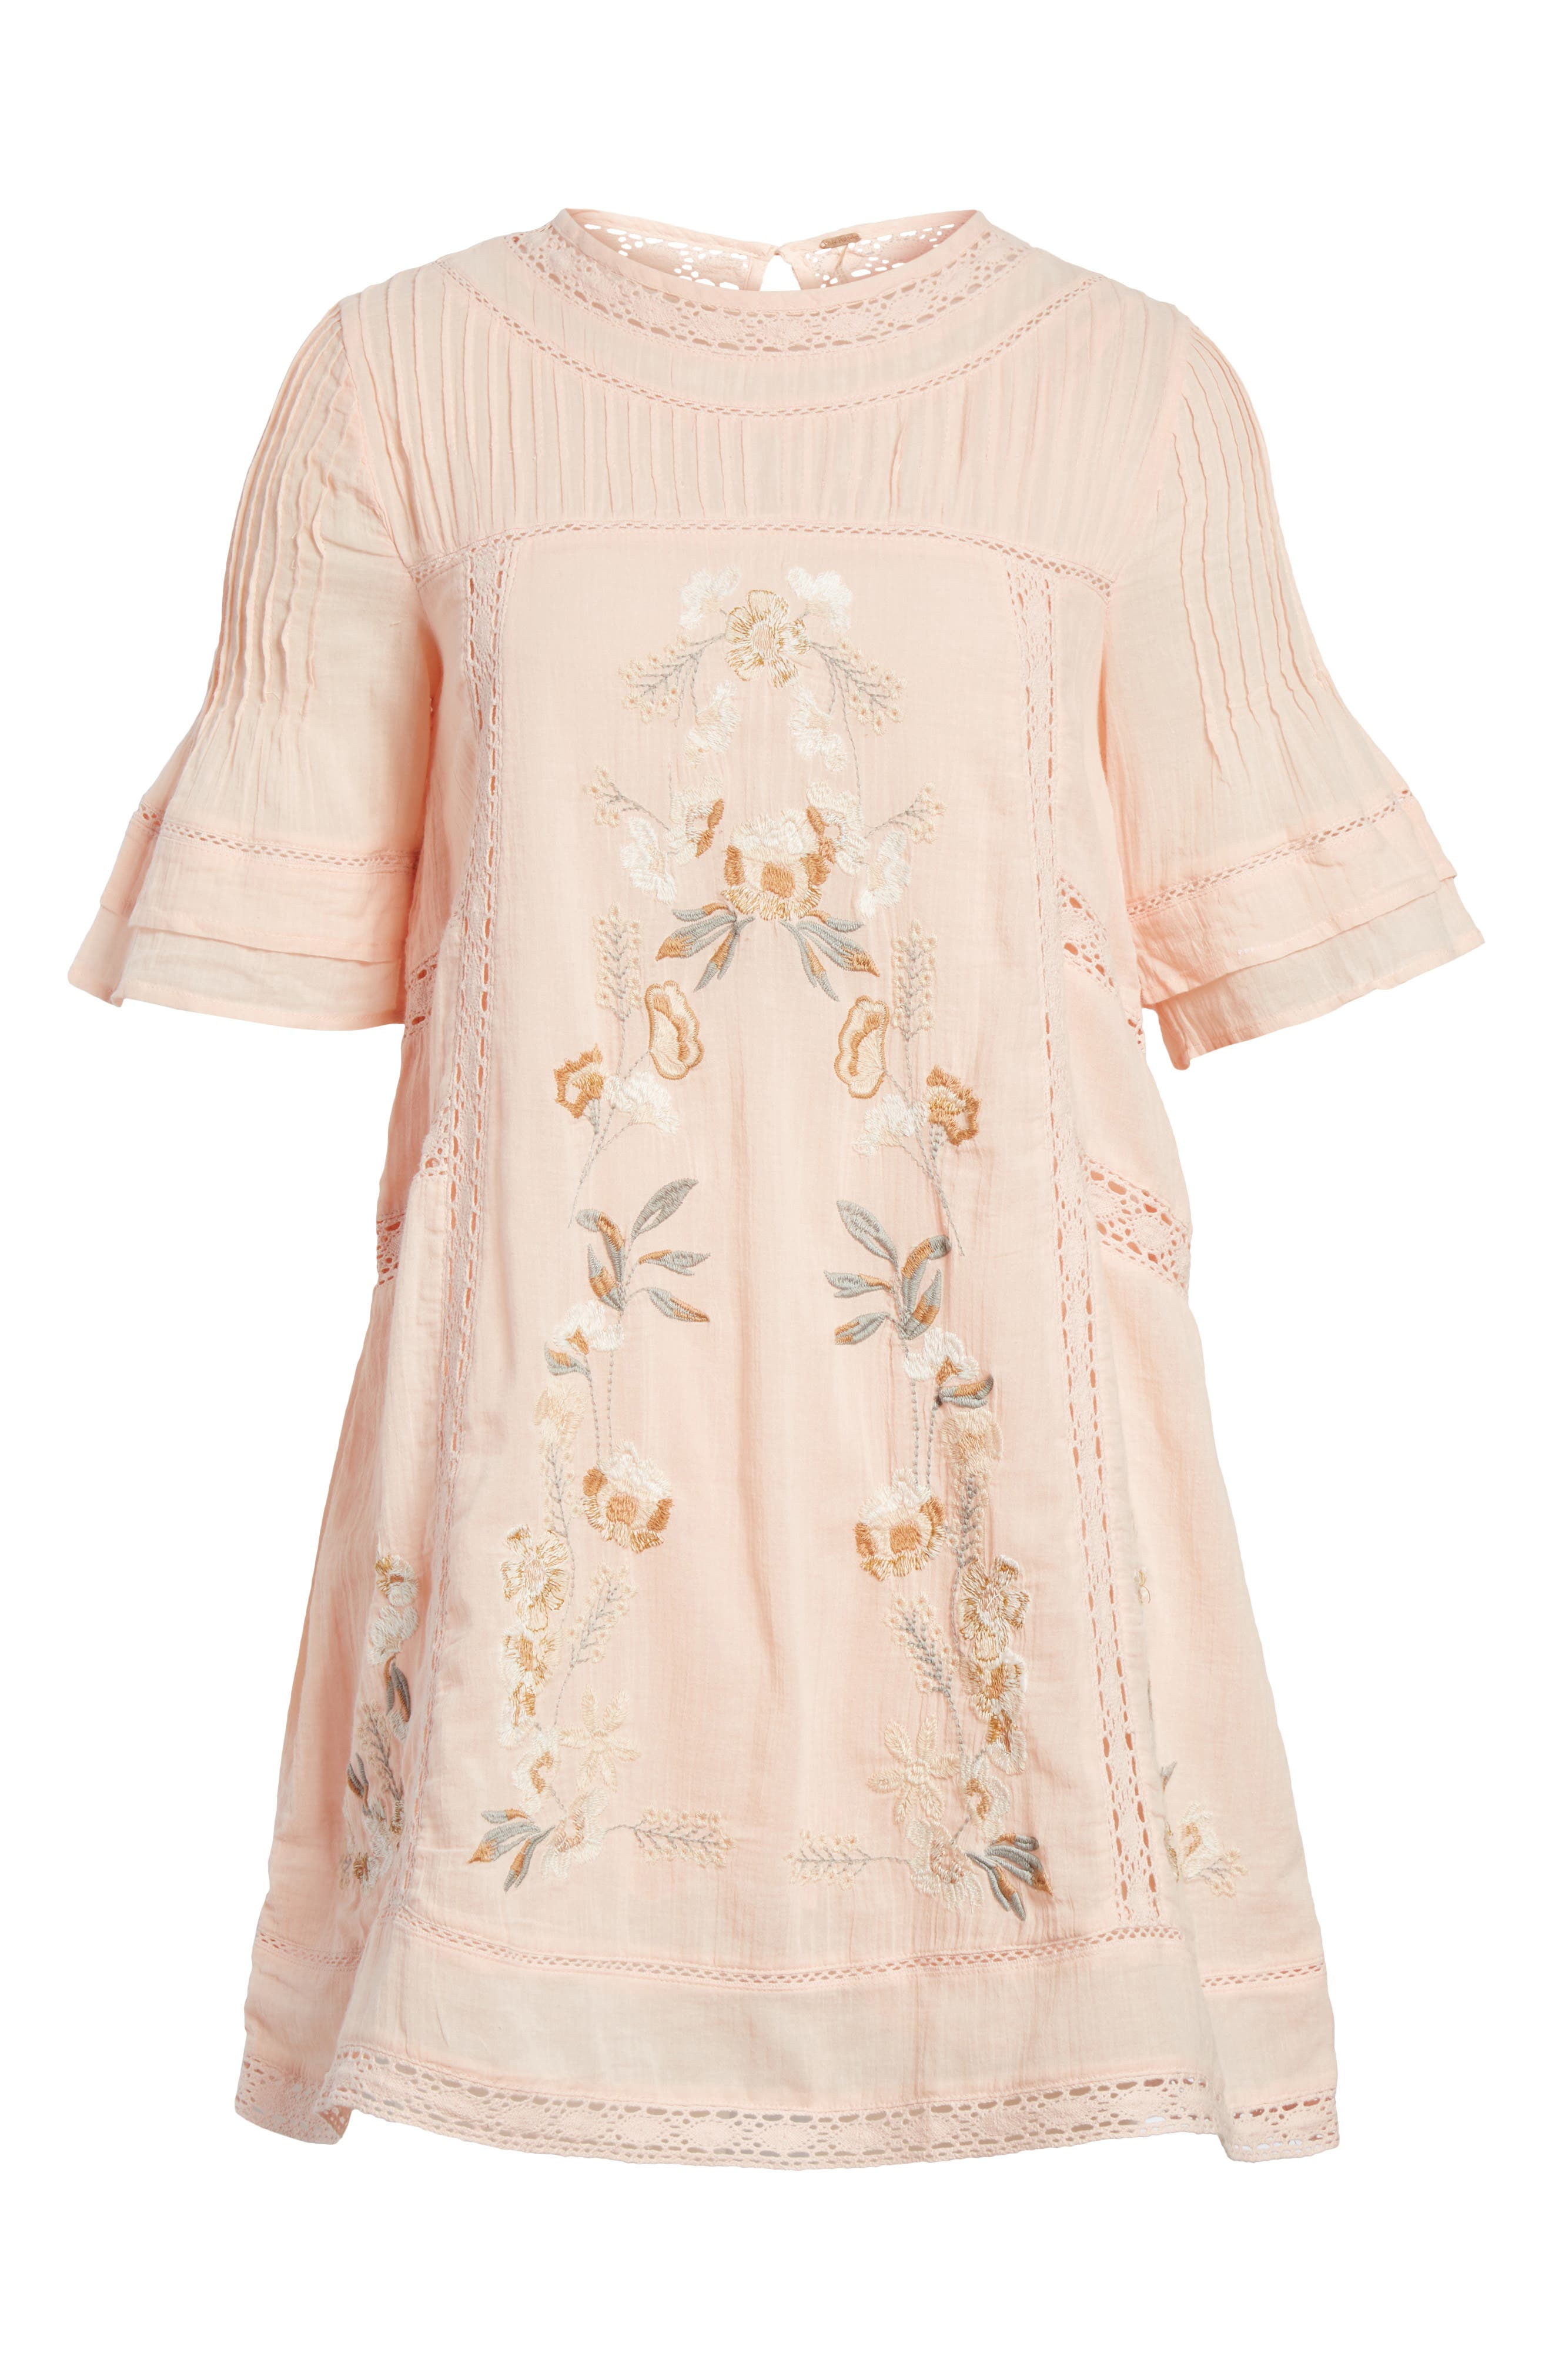 'Perfectly Victorian' Minidress,                             Alternate thumbnail 5, color,                             Pink